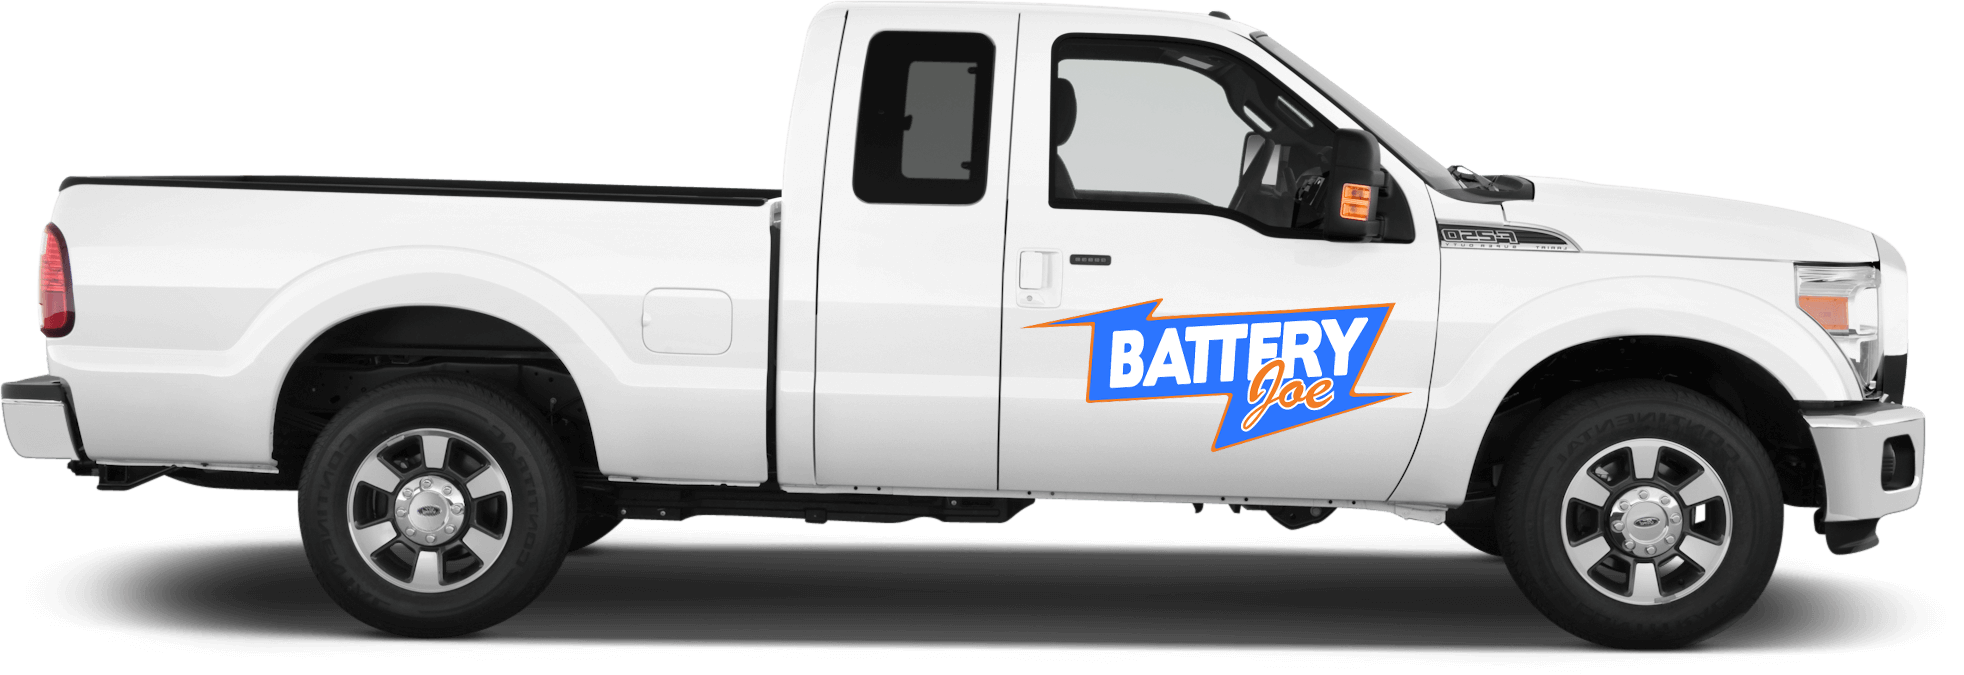 Battery Joe Abilene Pick-Up & Delivery